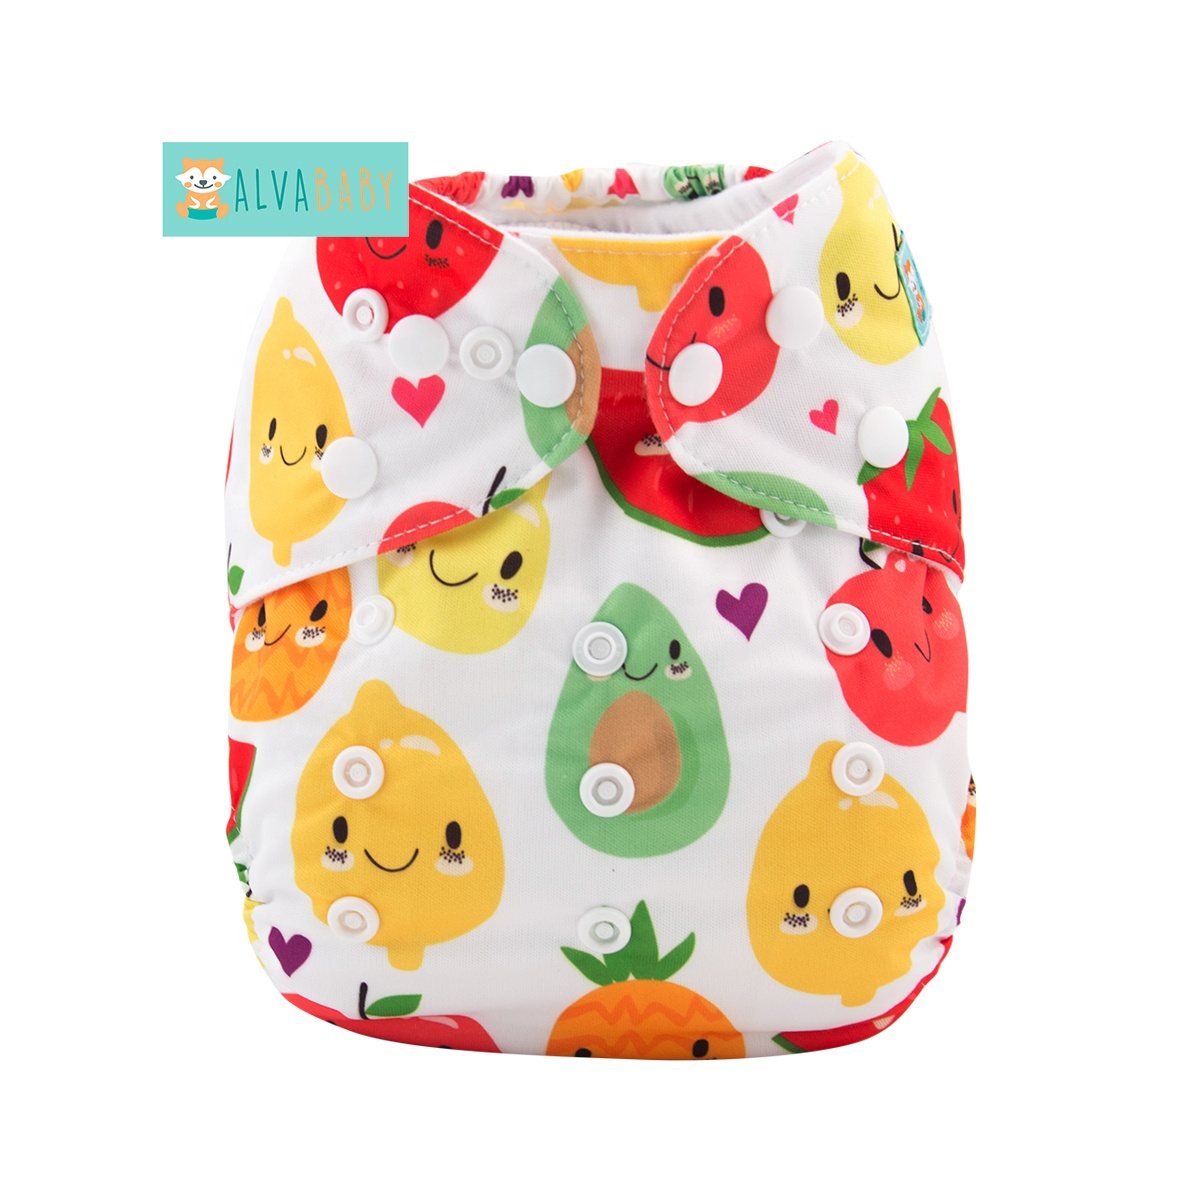 Alvababy New Pattern Rabbit and Balloon Baby Diaper Cloth Diaper Manufacturers in China